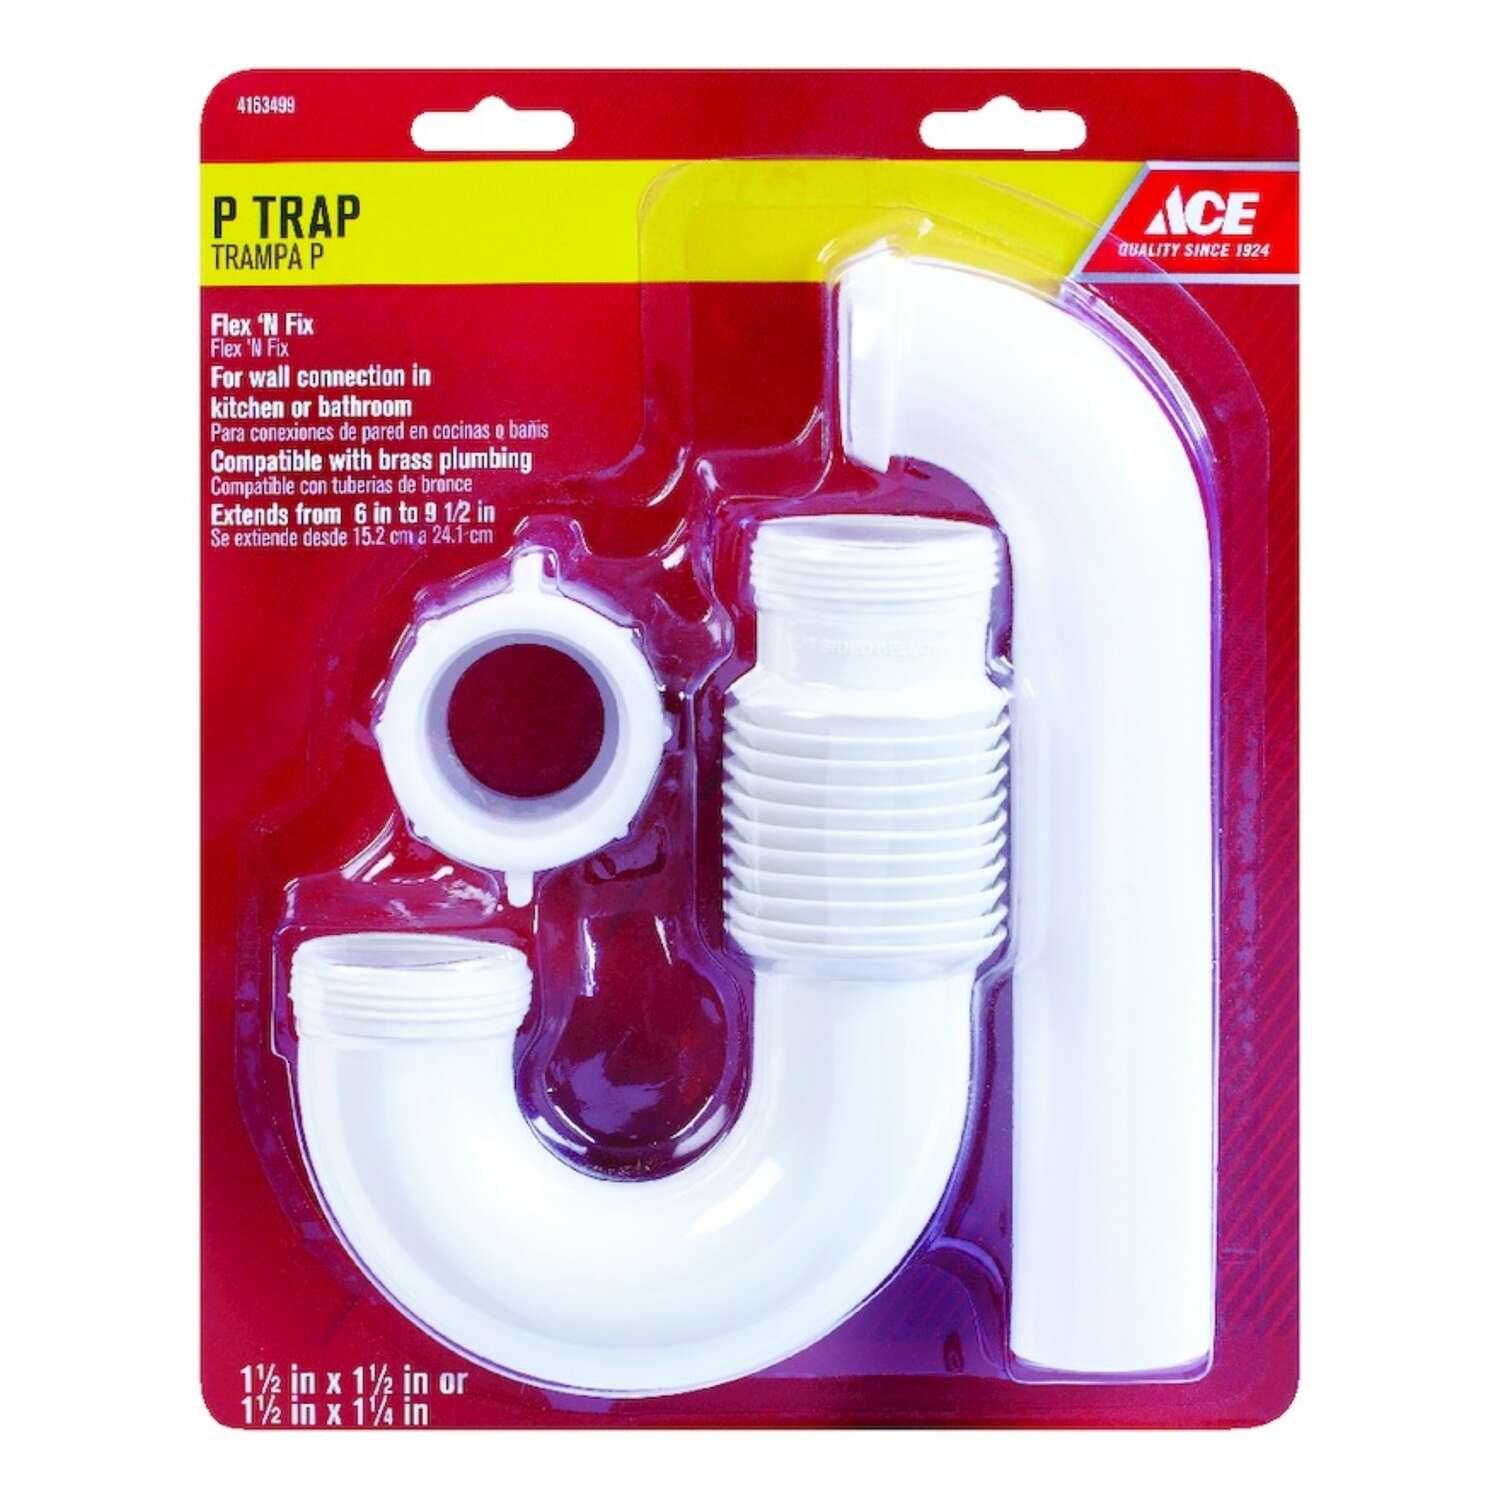 Ace 1 1 2 In Dia Pvc P Trap Ace Hardware